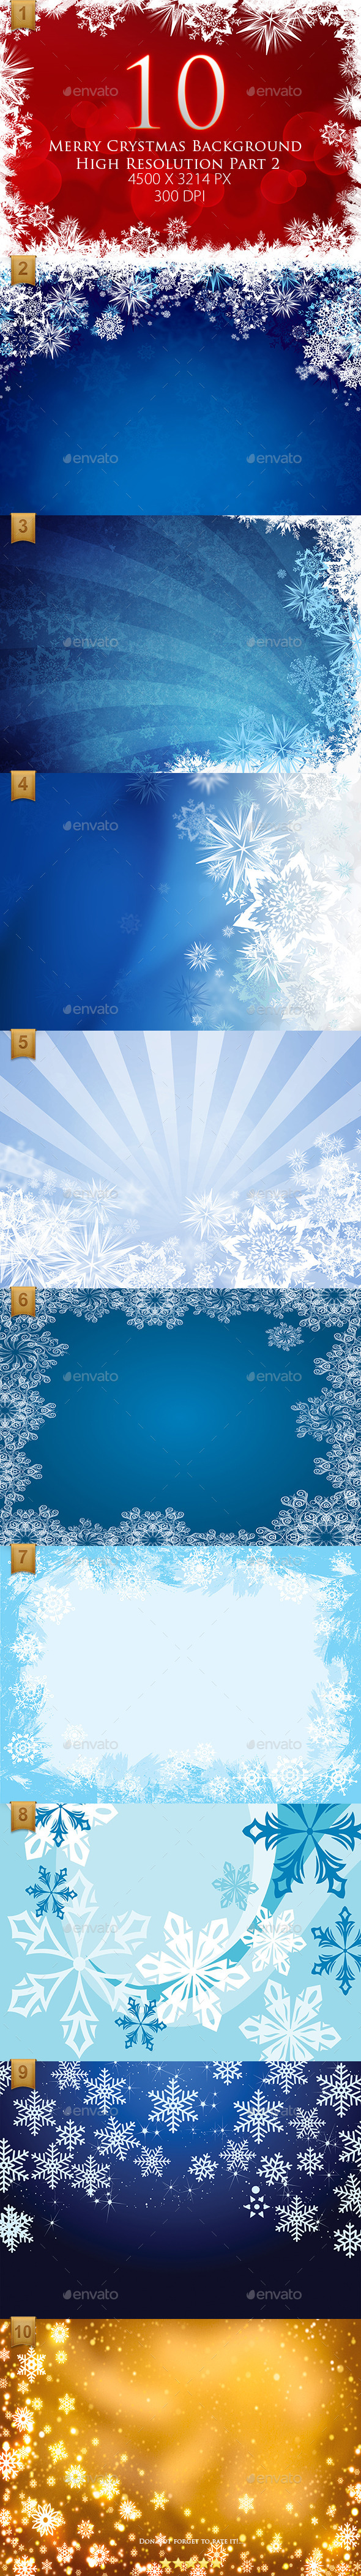 GraphicRiver 10 Merry Crystmas Background High Resolution Part2 9642516